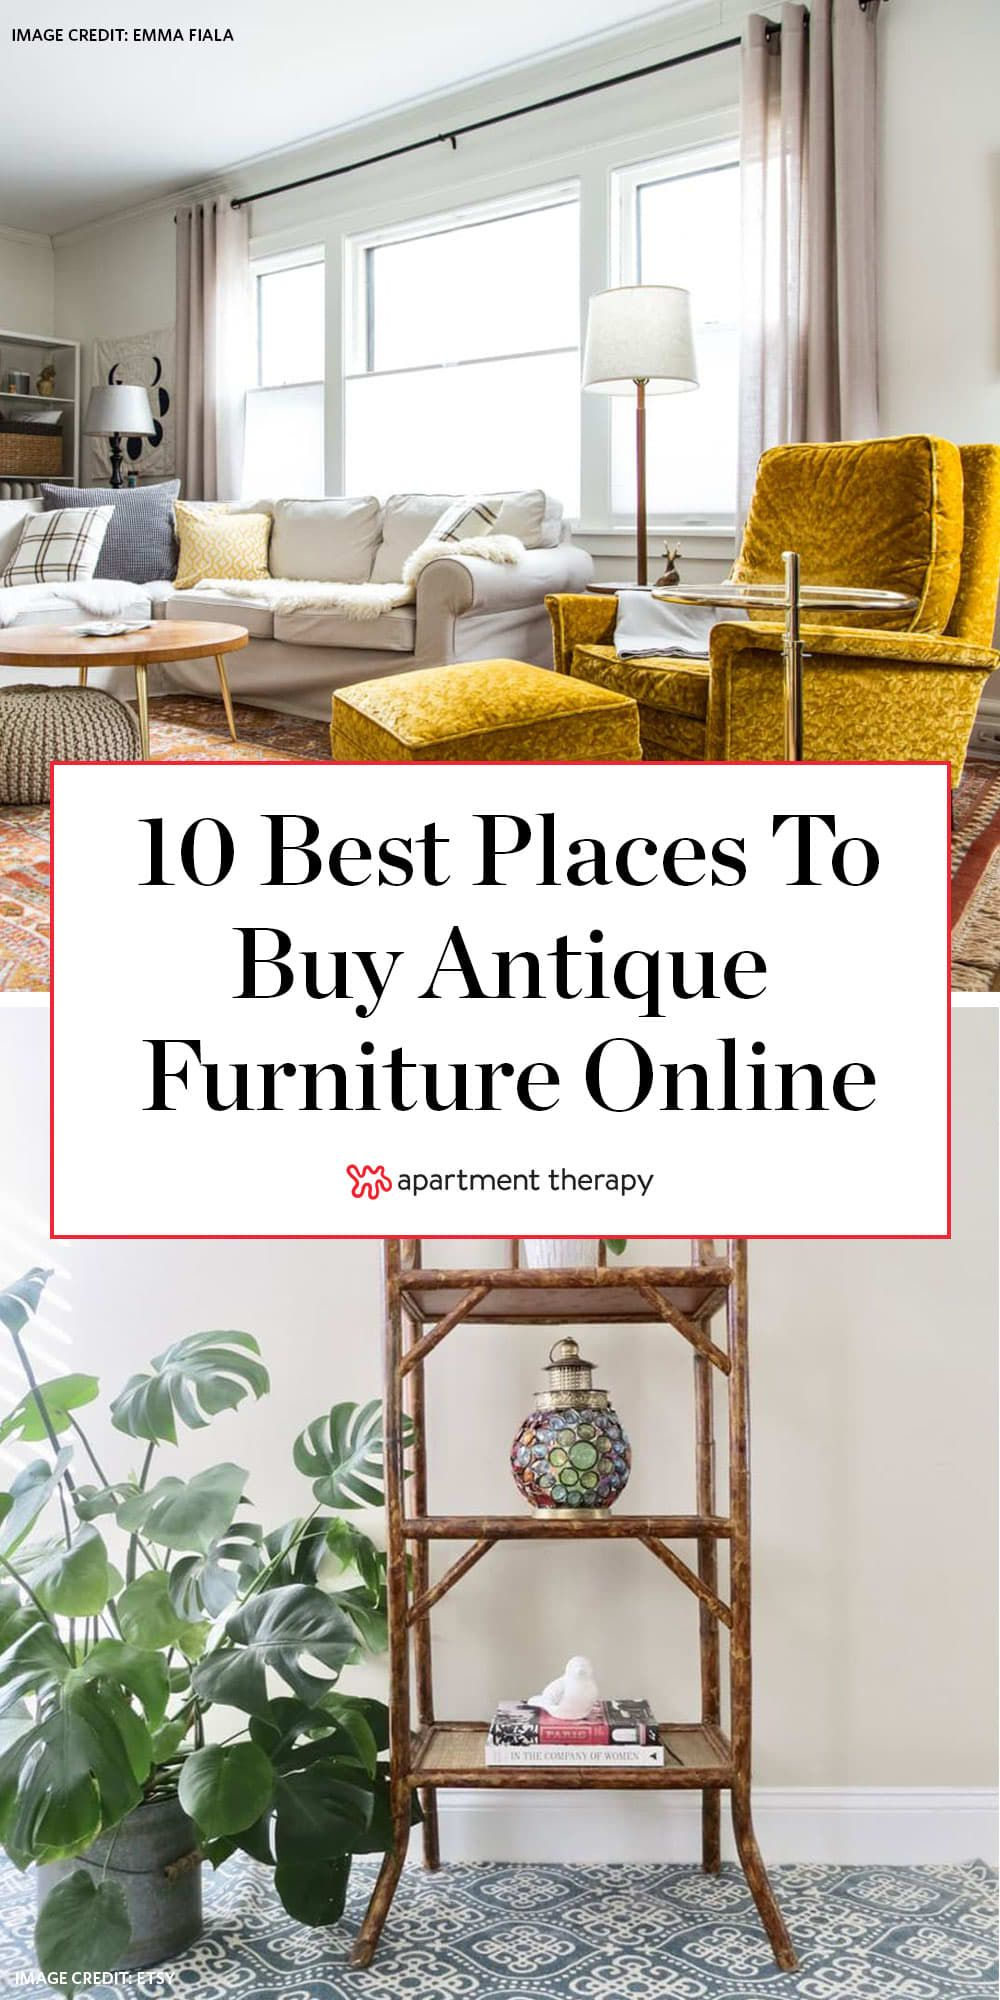 10 Places To Buy Antique And Vintage Furniture Online In 2020 Best Furniture Online Buy Used Furniture Online Furniture